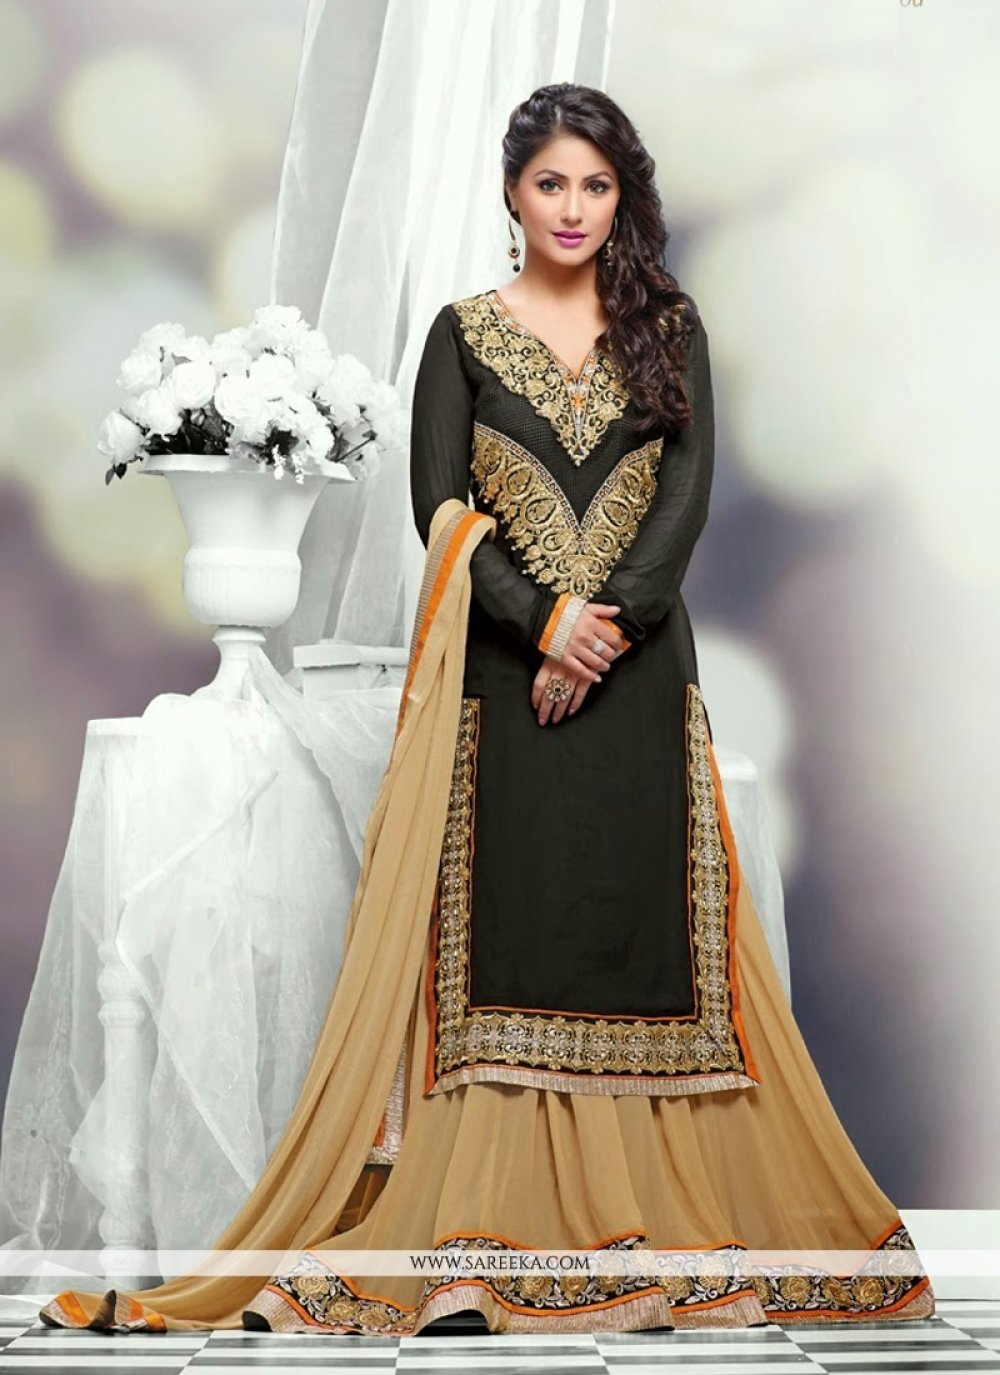 Heena Khan Black And Cream Georgette Lehenga Choli